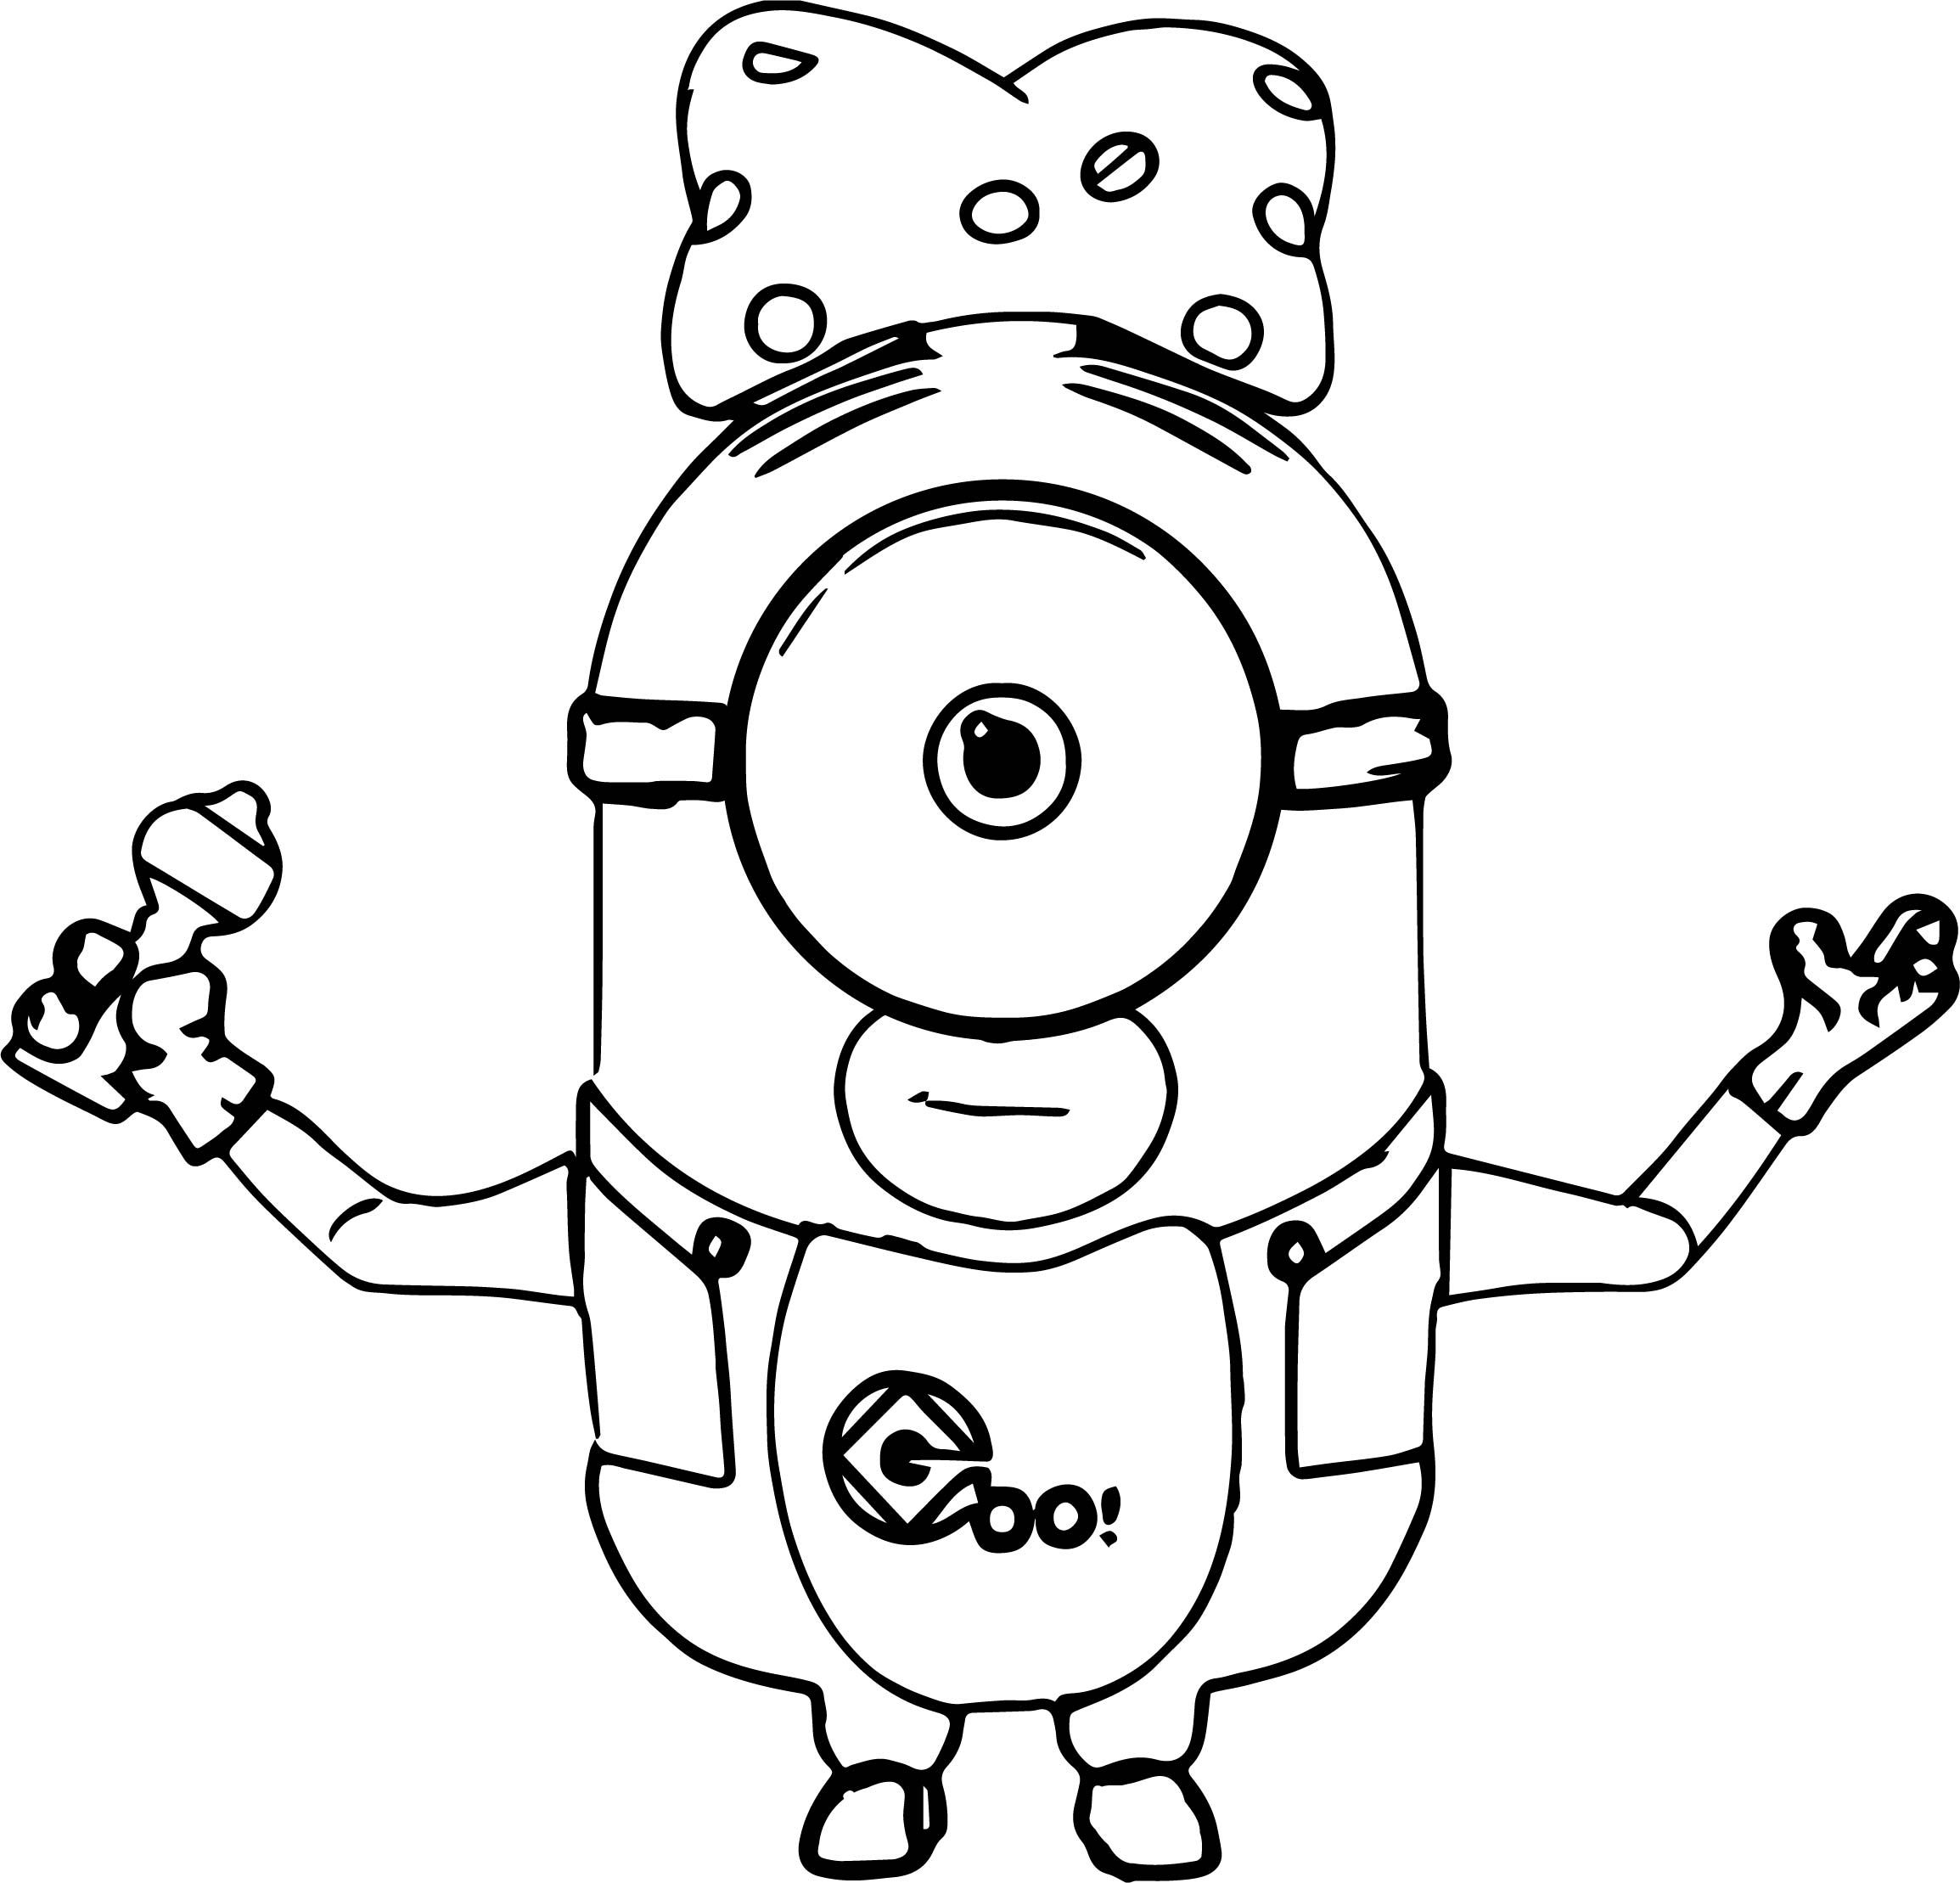 Cool Just Baby Minions Coloring Page Minions Coloring Pages Baby Coloring Pages Minion Coloring Pages